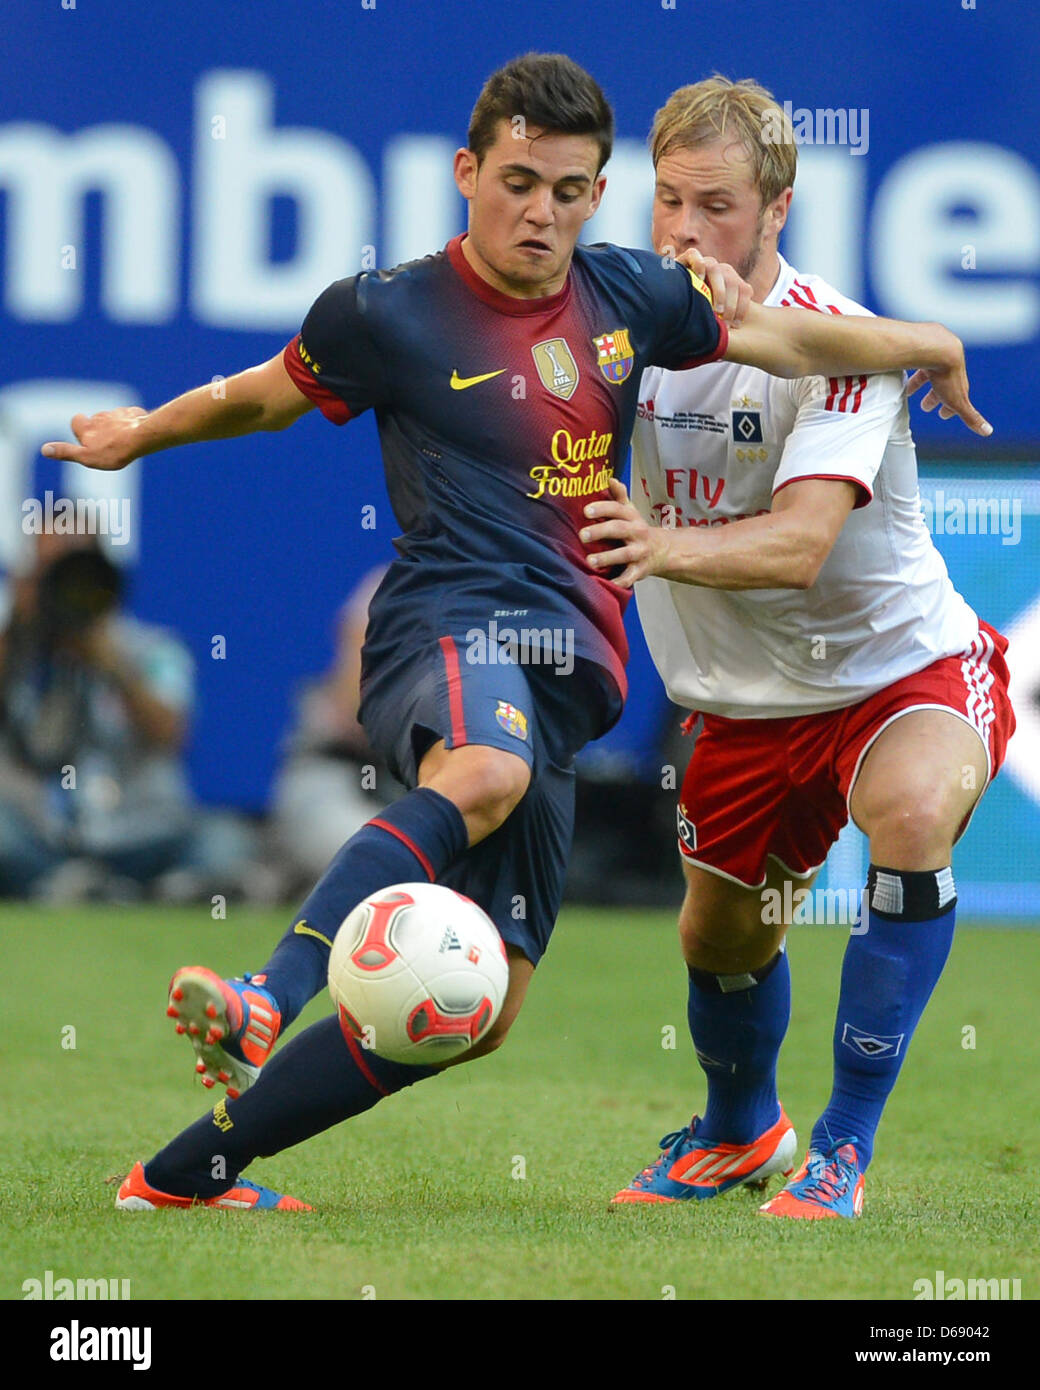 Hamburg's Maximilian Beister (R) and Barcelona's Joan Roman vie for the ball during the soccer test match - Stock Image